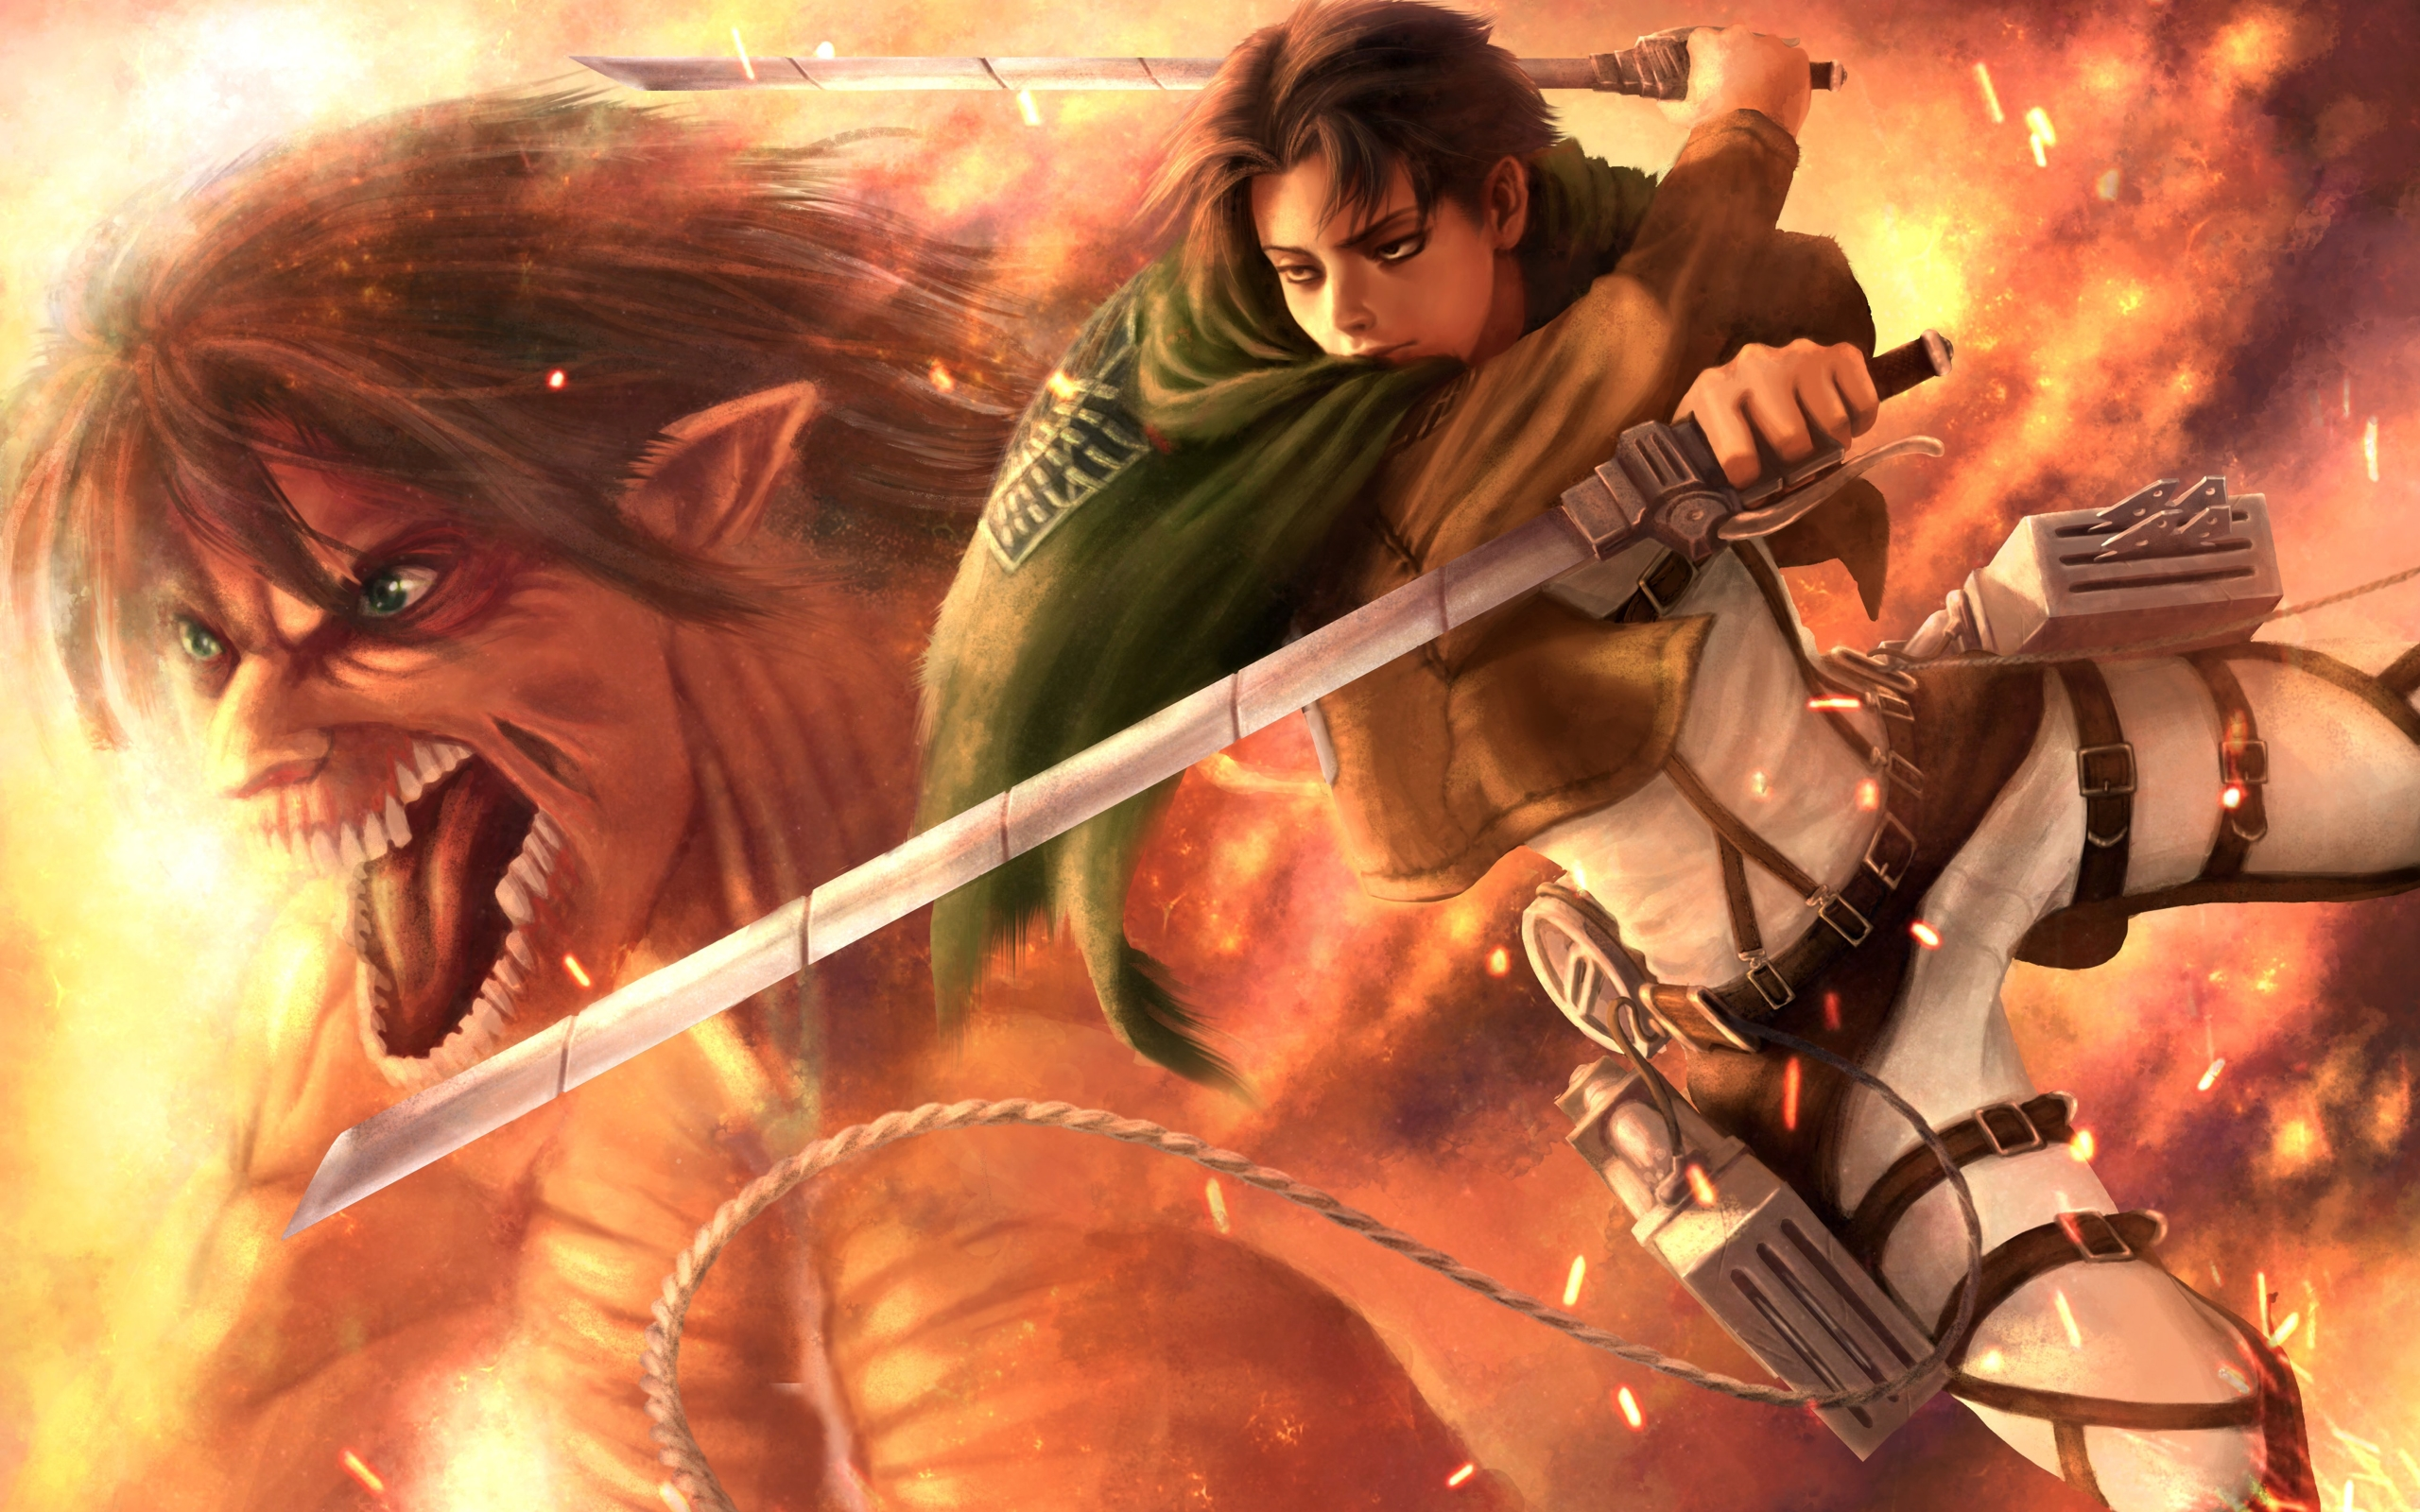 Wallpaper Of Eren Yeager Levi Ackerman Anime Attack On Titan